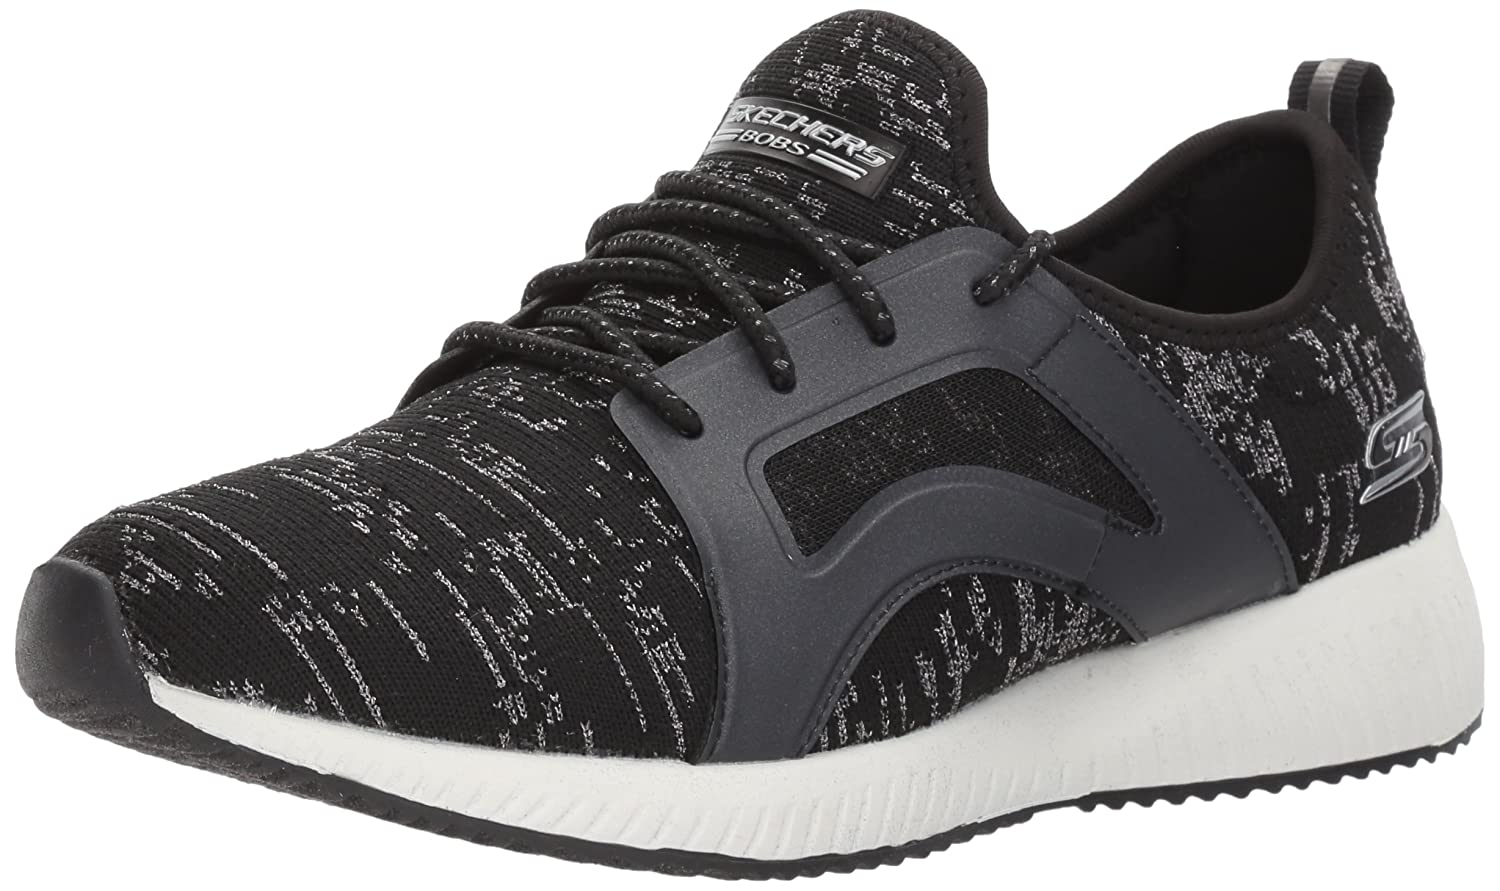 Skechers BOBS from Women's Bobs Squad-Glossy Finish Fashion Sneaker B072JHLRYN 7 B(M) US|Black